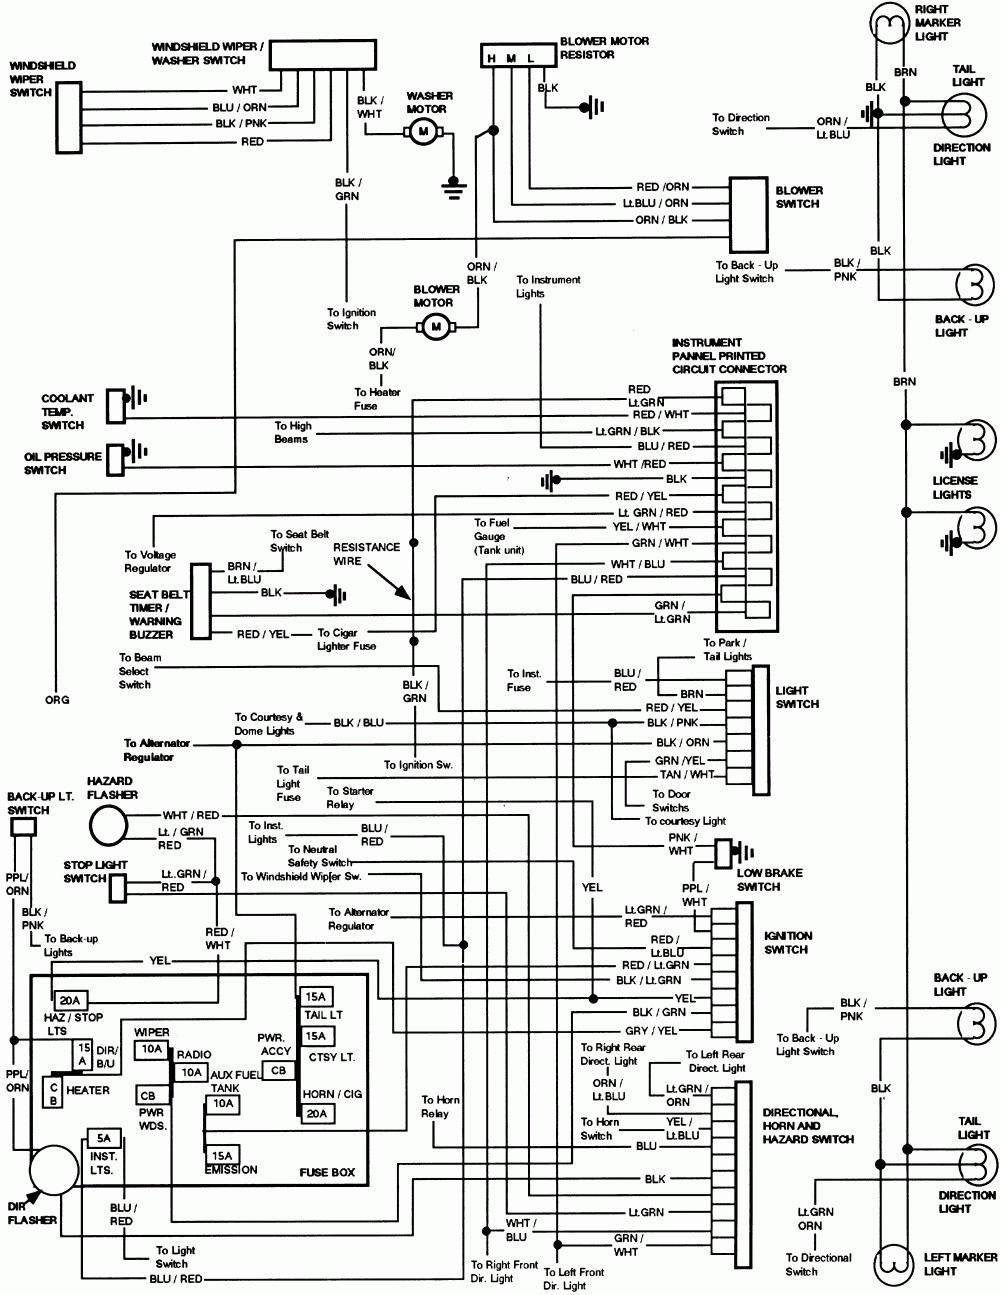 hight resolution of 1989 ford f 350 wiring diagram wiring diagram schema1989 f350 wiring diagram schema diagram database 1989